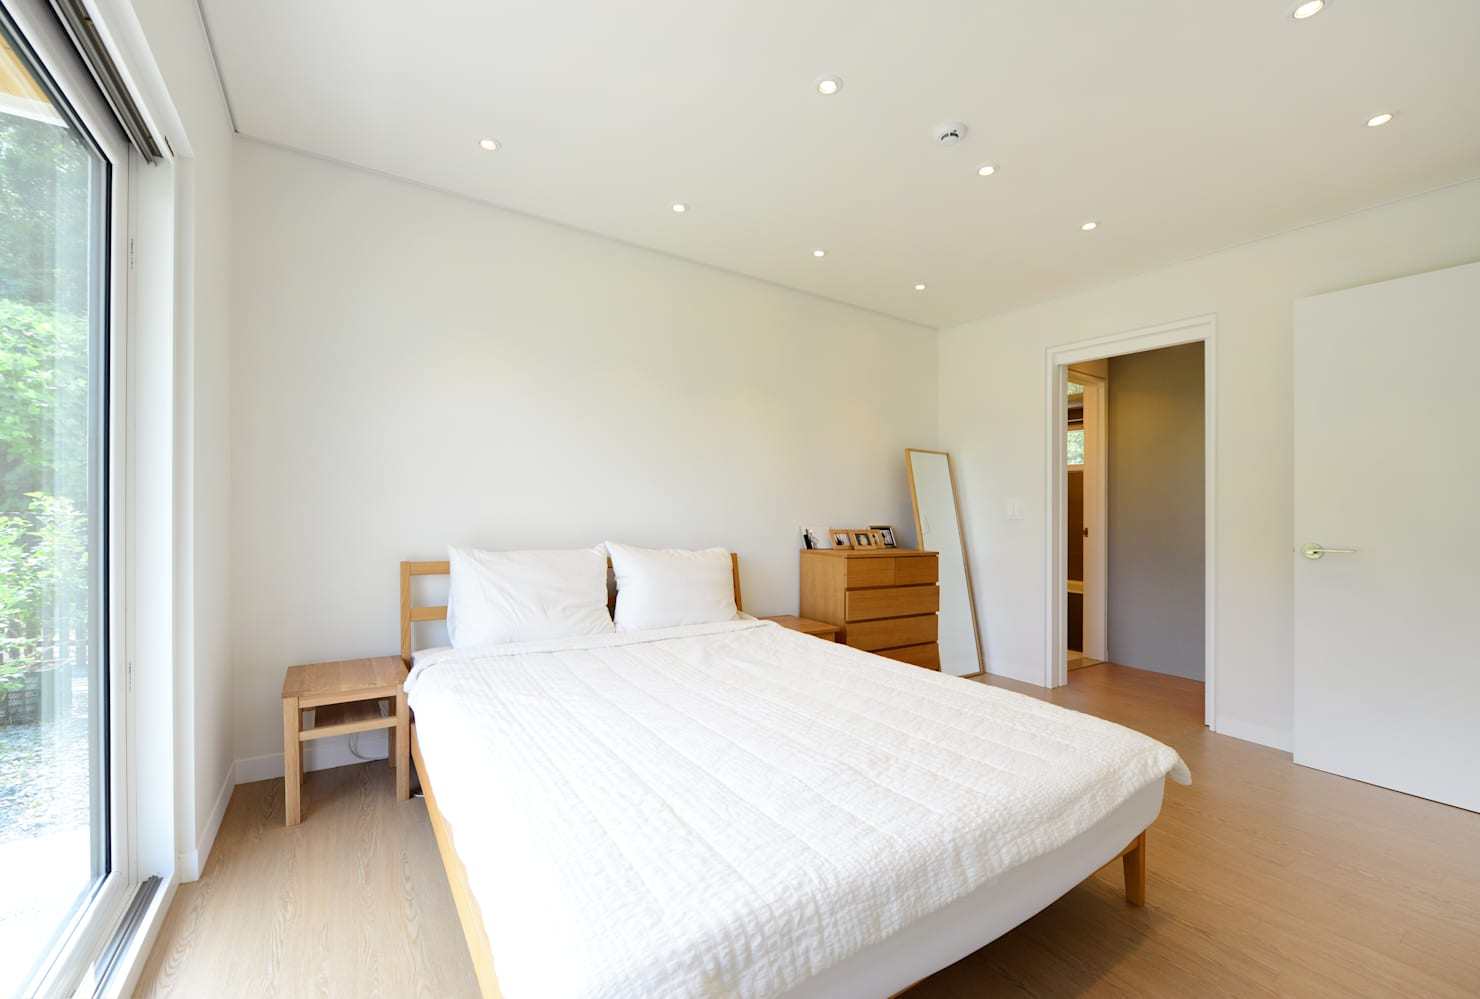 How to make your bedroom look twice as big, with no construction!